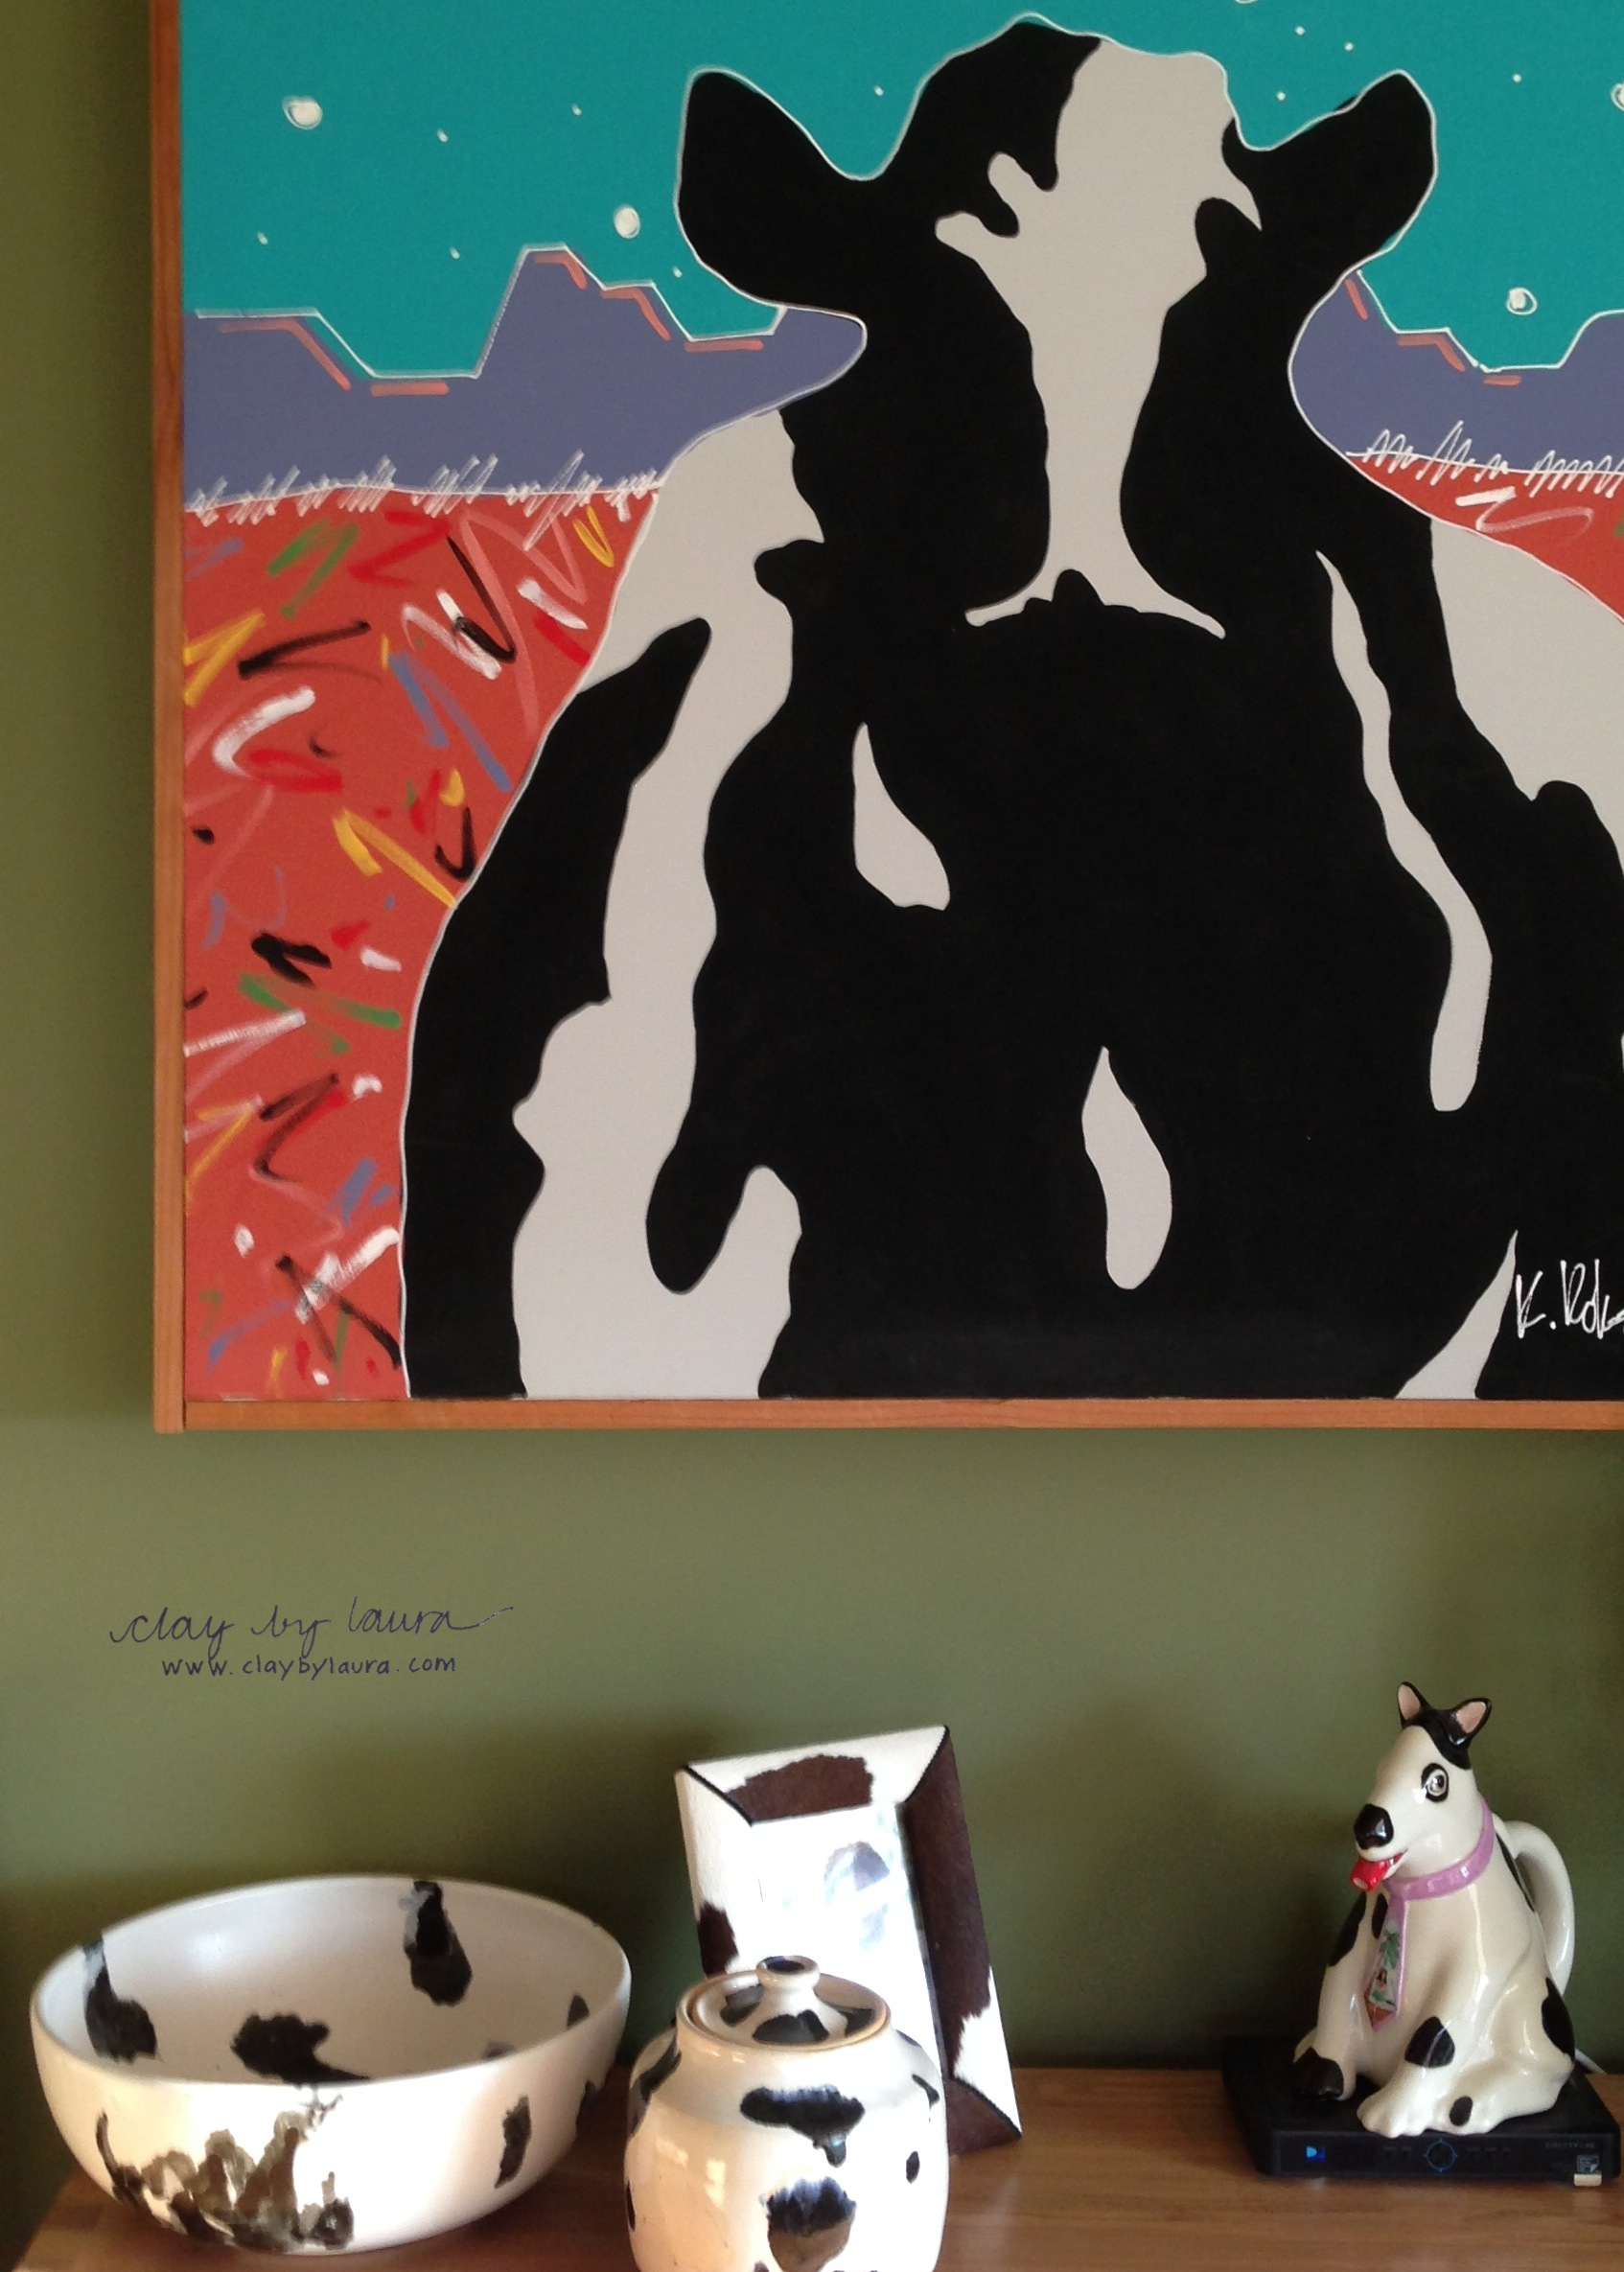 I like to display and group collections of my work and other art throughout our house.